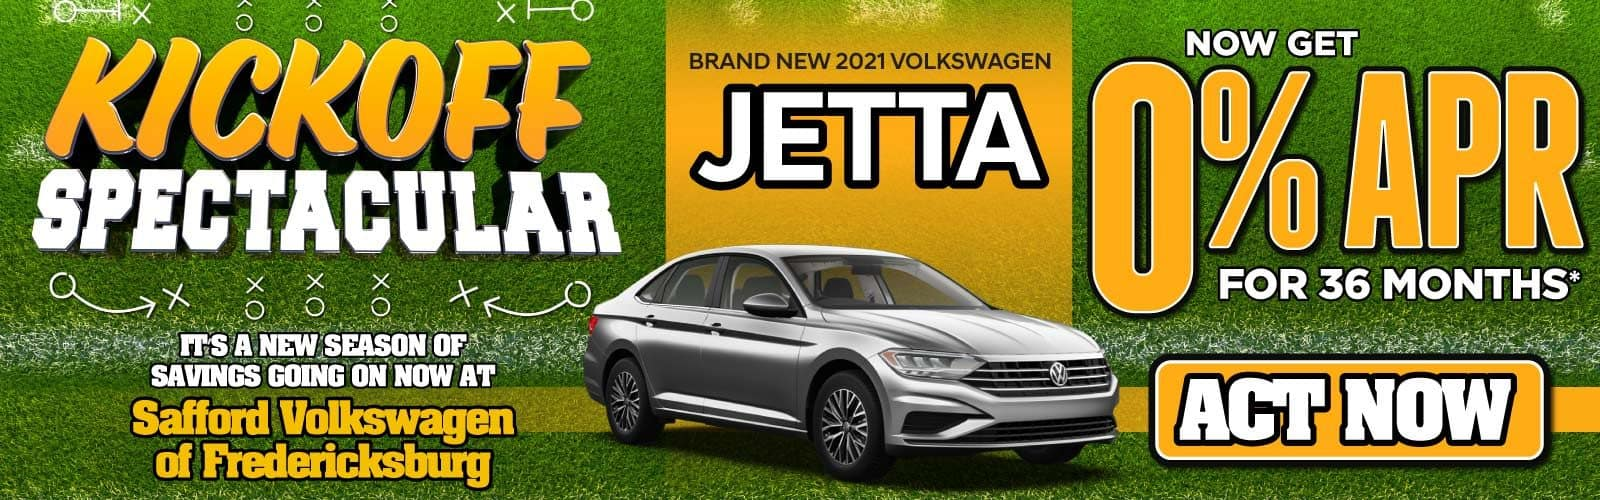 New 2021 Volkswagen Jetta 0% APR for 36 Months — ACT NOW